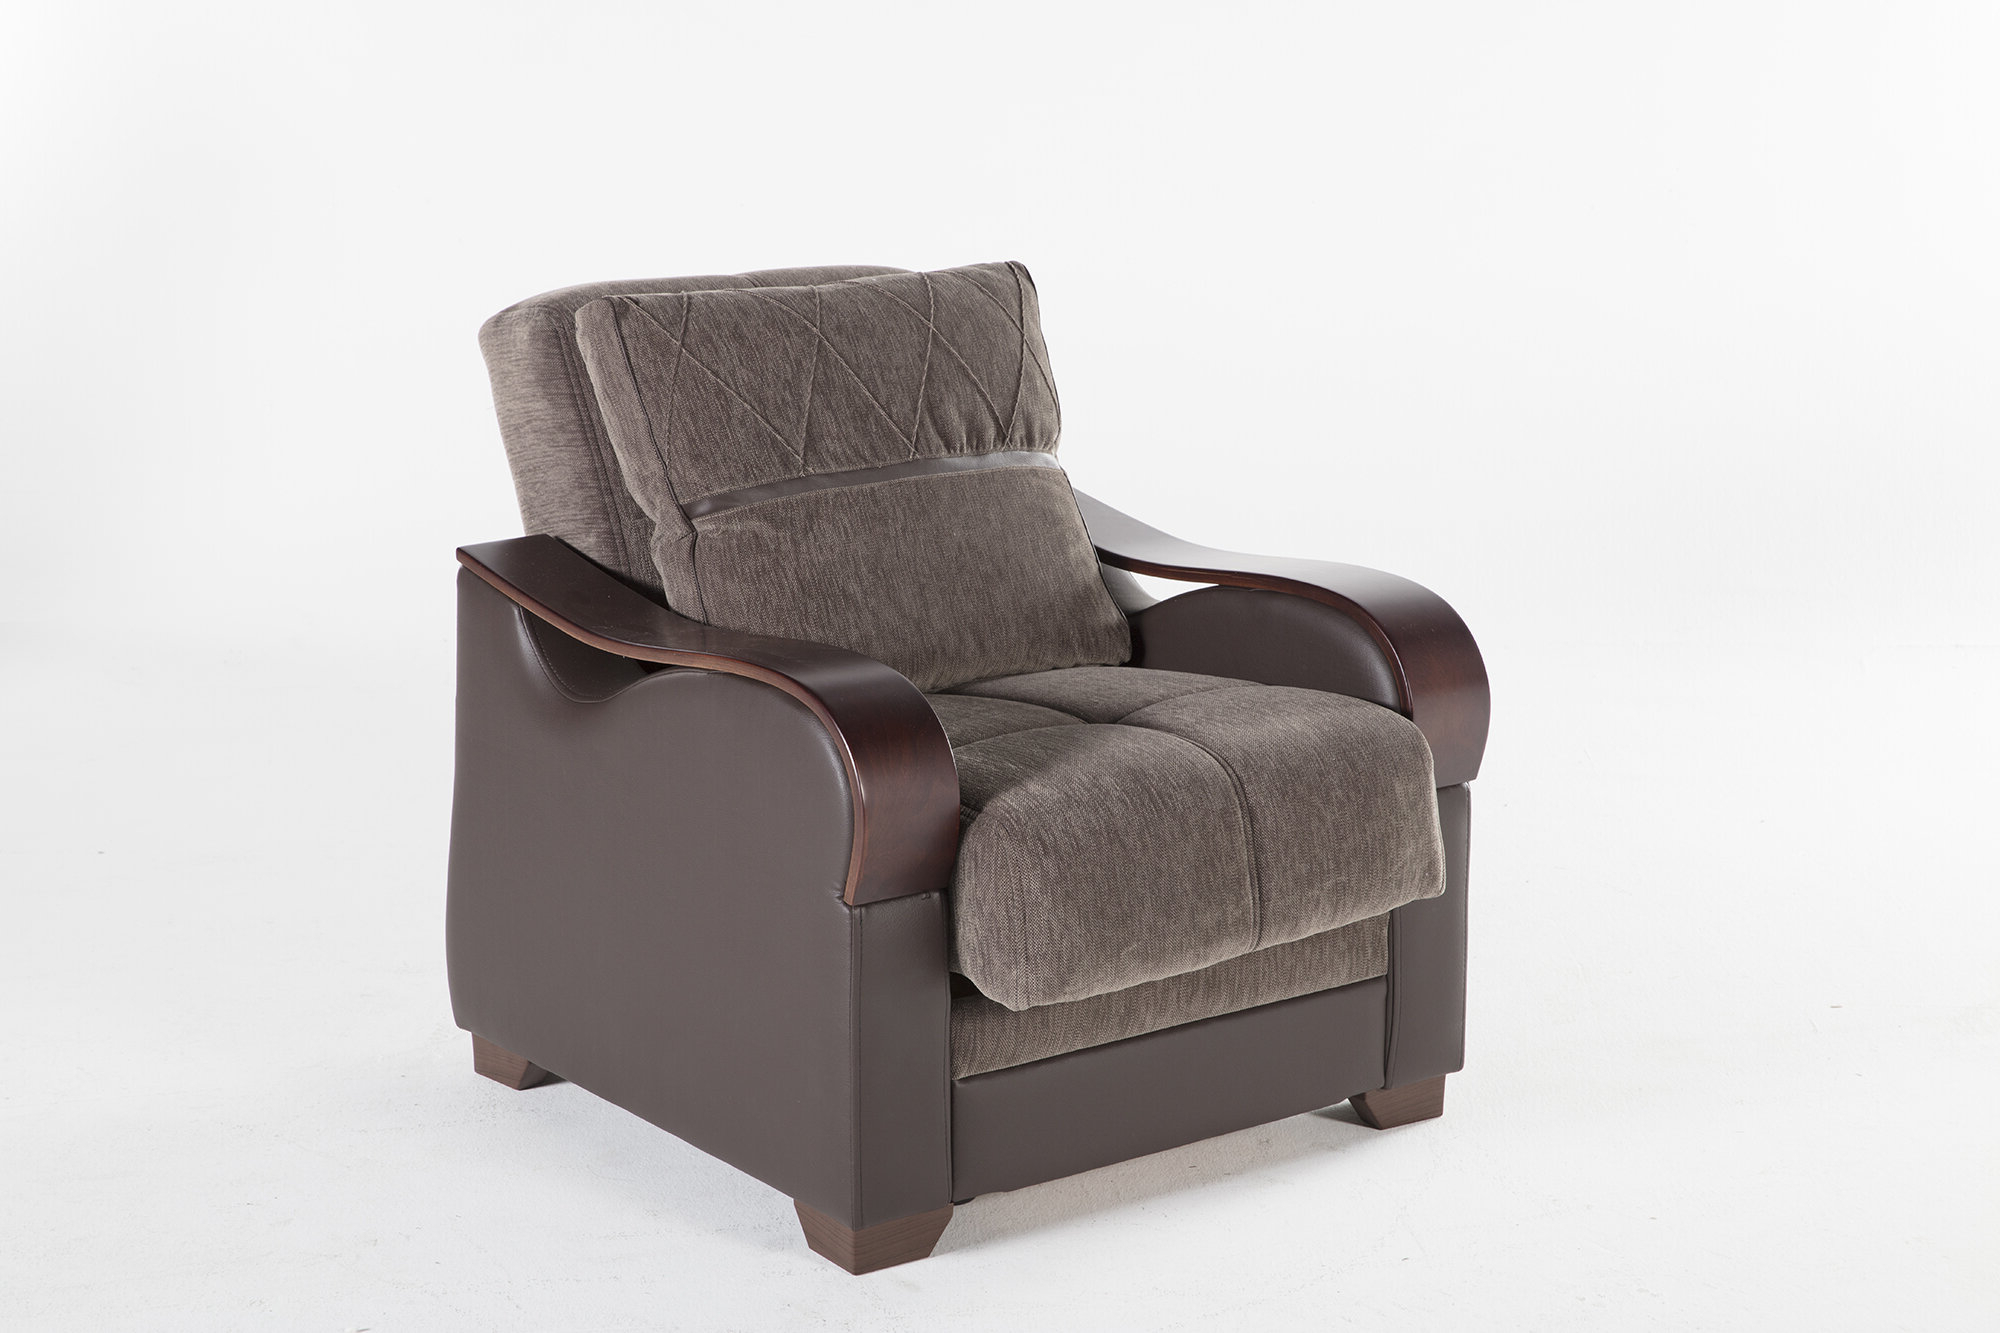 Blaithin Simple Single Barrel Chairs For Popular Dougie Convertible Chair (View 13 of 20)